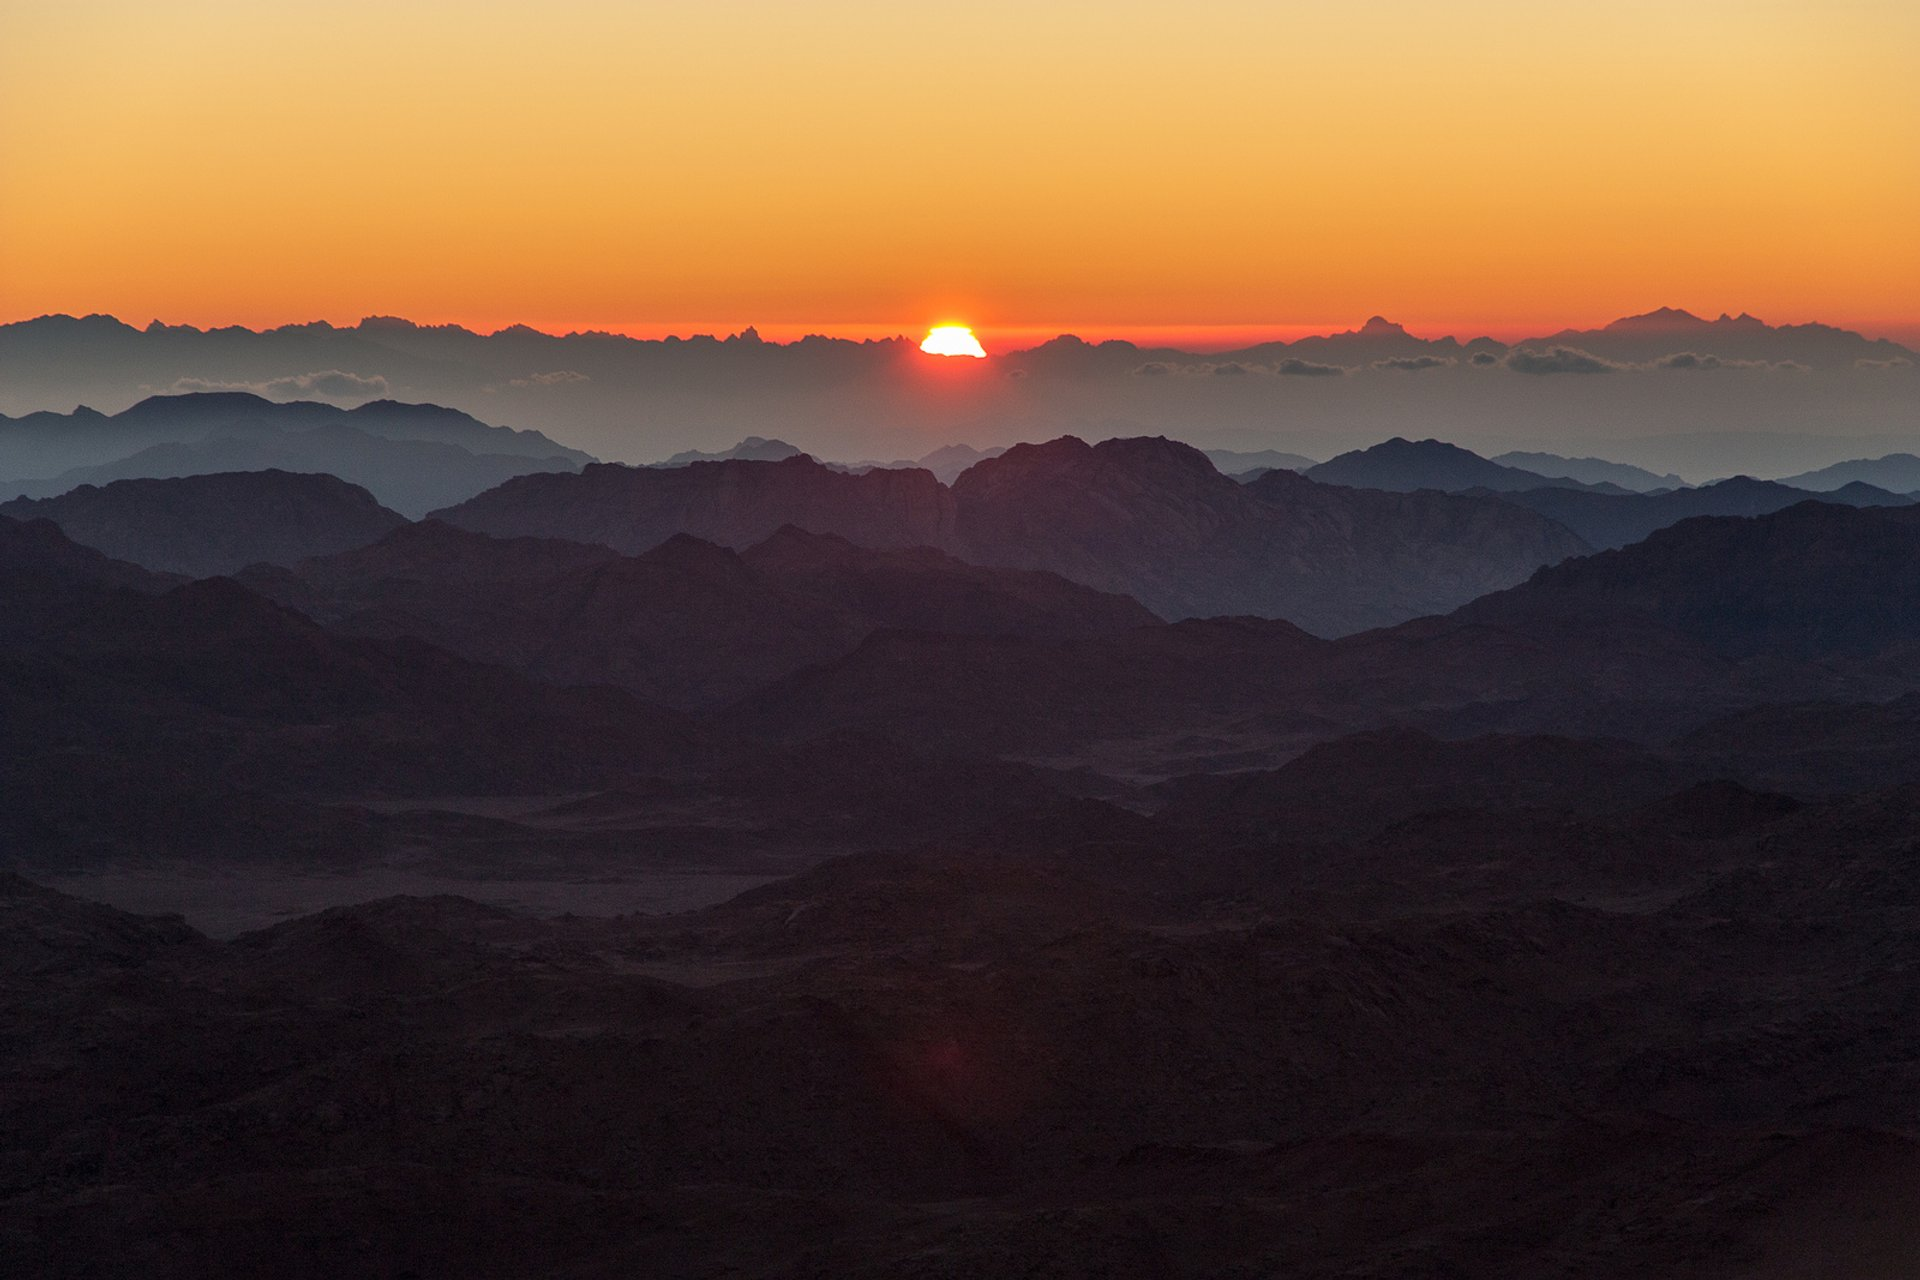 Best Time to See Sunrise or Sunset on Mount Sinai in Egypt 2019